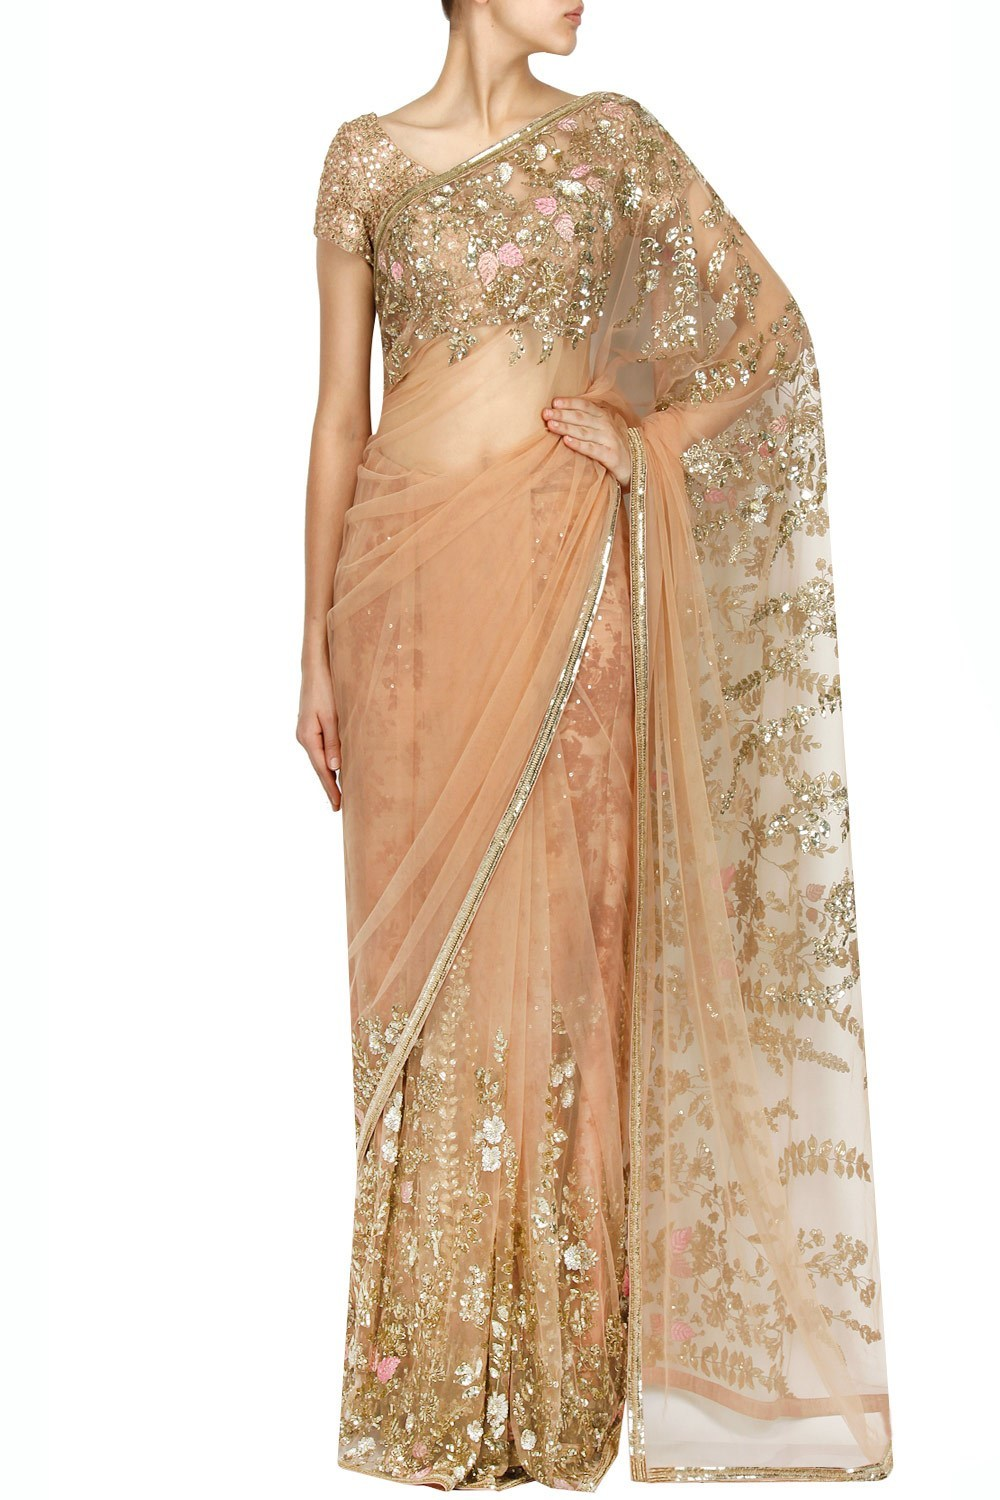 caccf3a7e14446 Sabyasachi Peach Floral Thread Sequins Embroidered Saree – INR 98500 ~ USD  1450